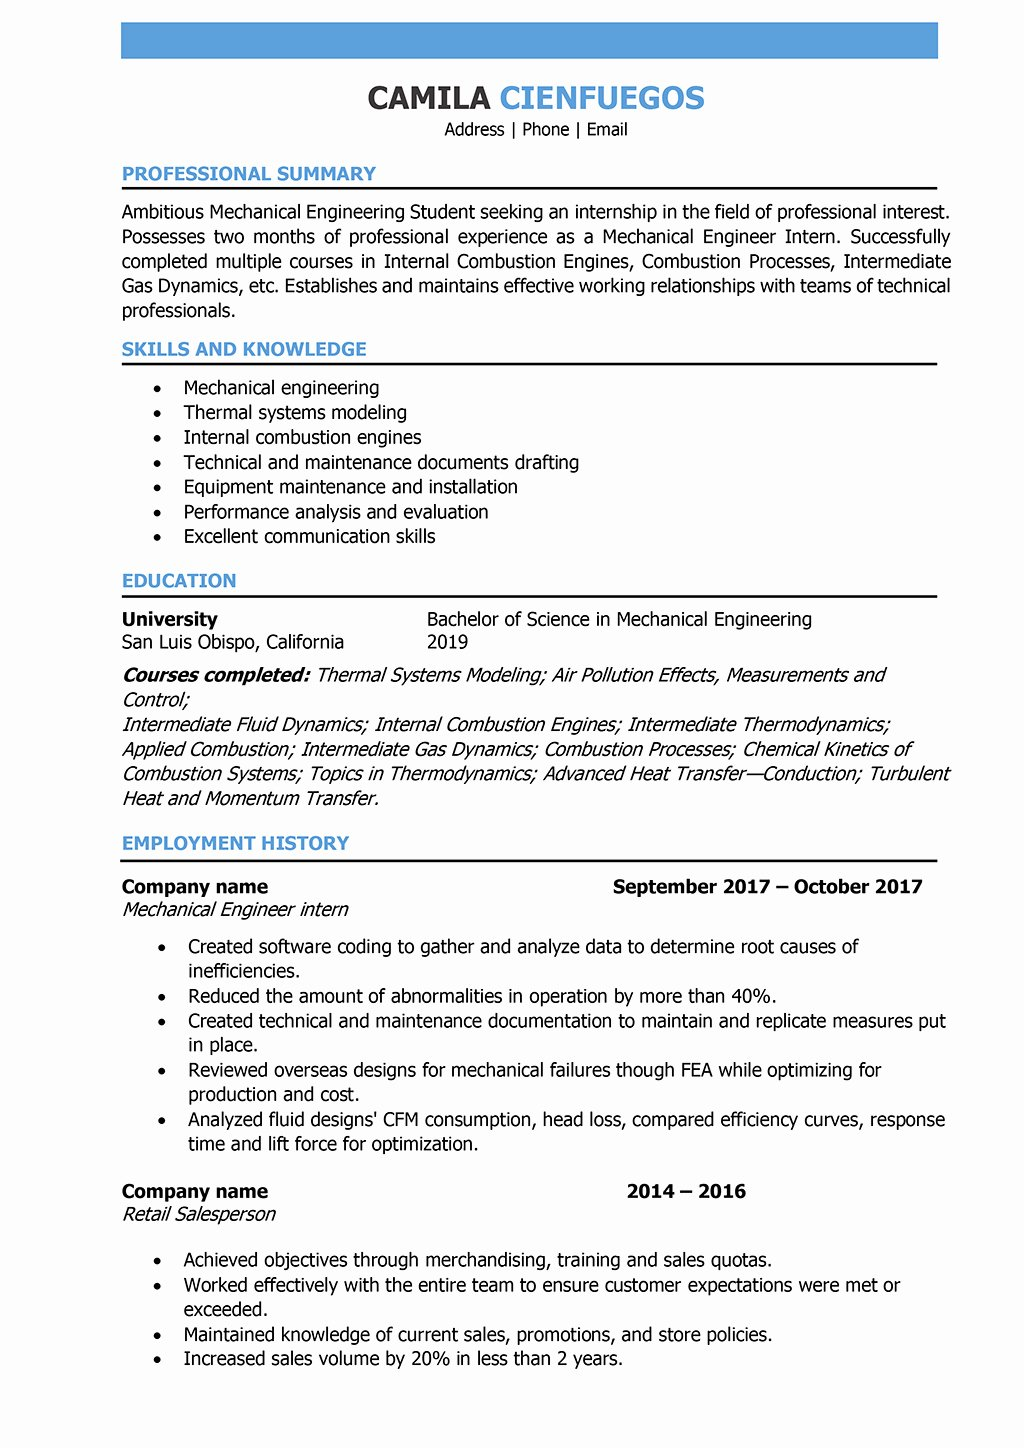 Mechanical Engineer Resume Samples and Writing Guide [10